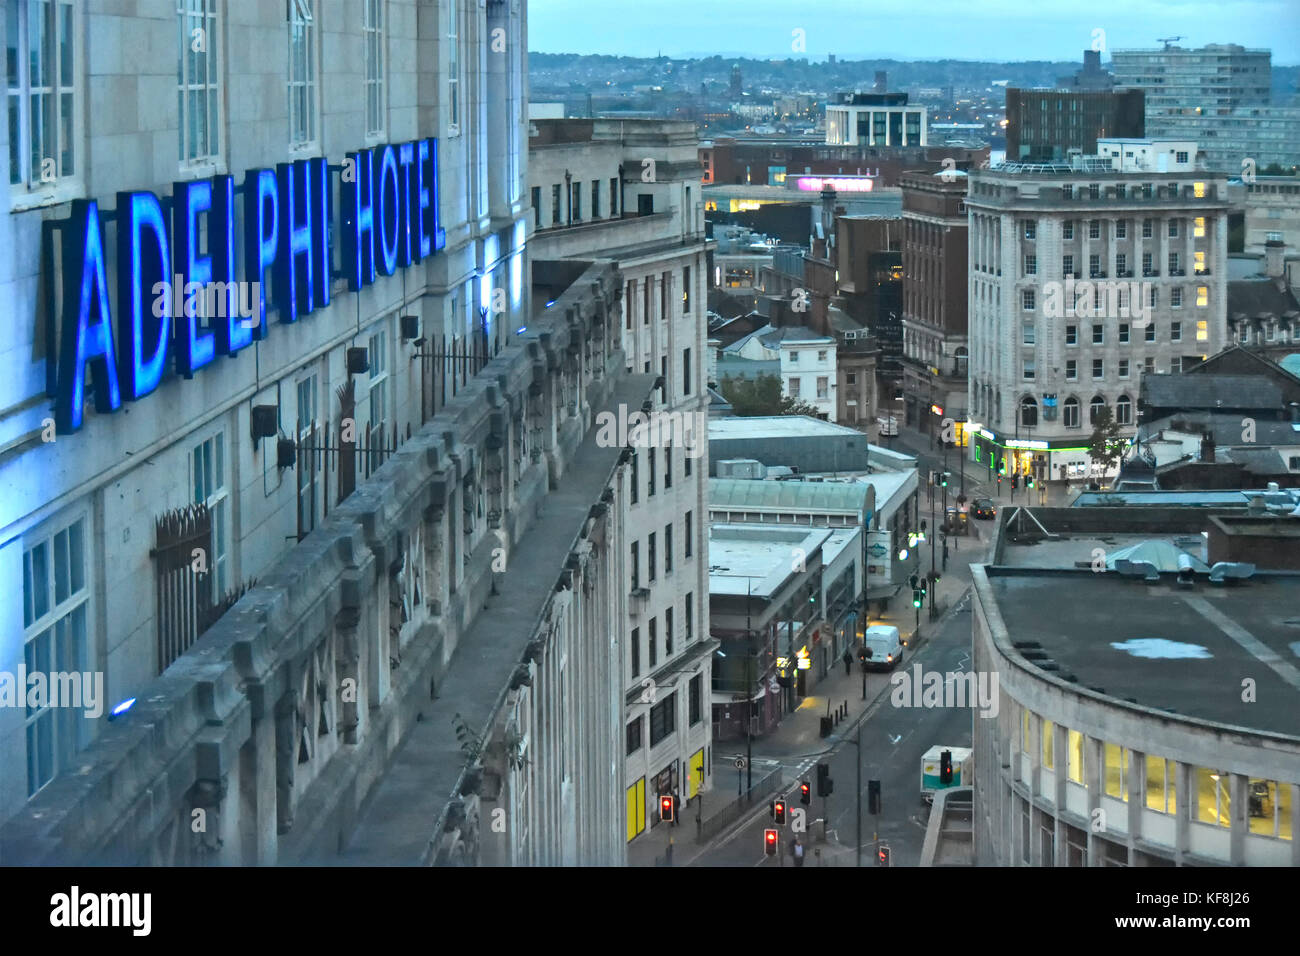 Early morning dawn view looking down from above at Liverpool city centre streets blue neon sign for Britannia Adelphi Stock Photo